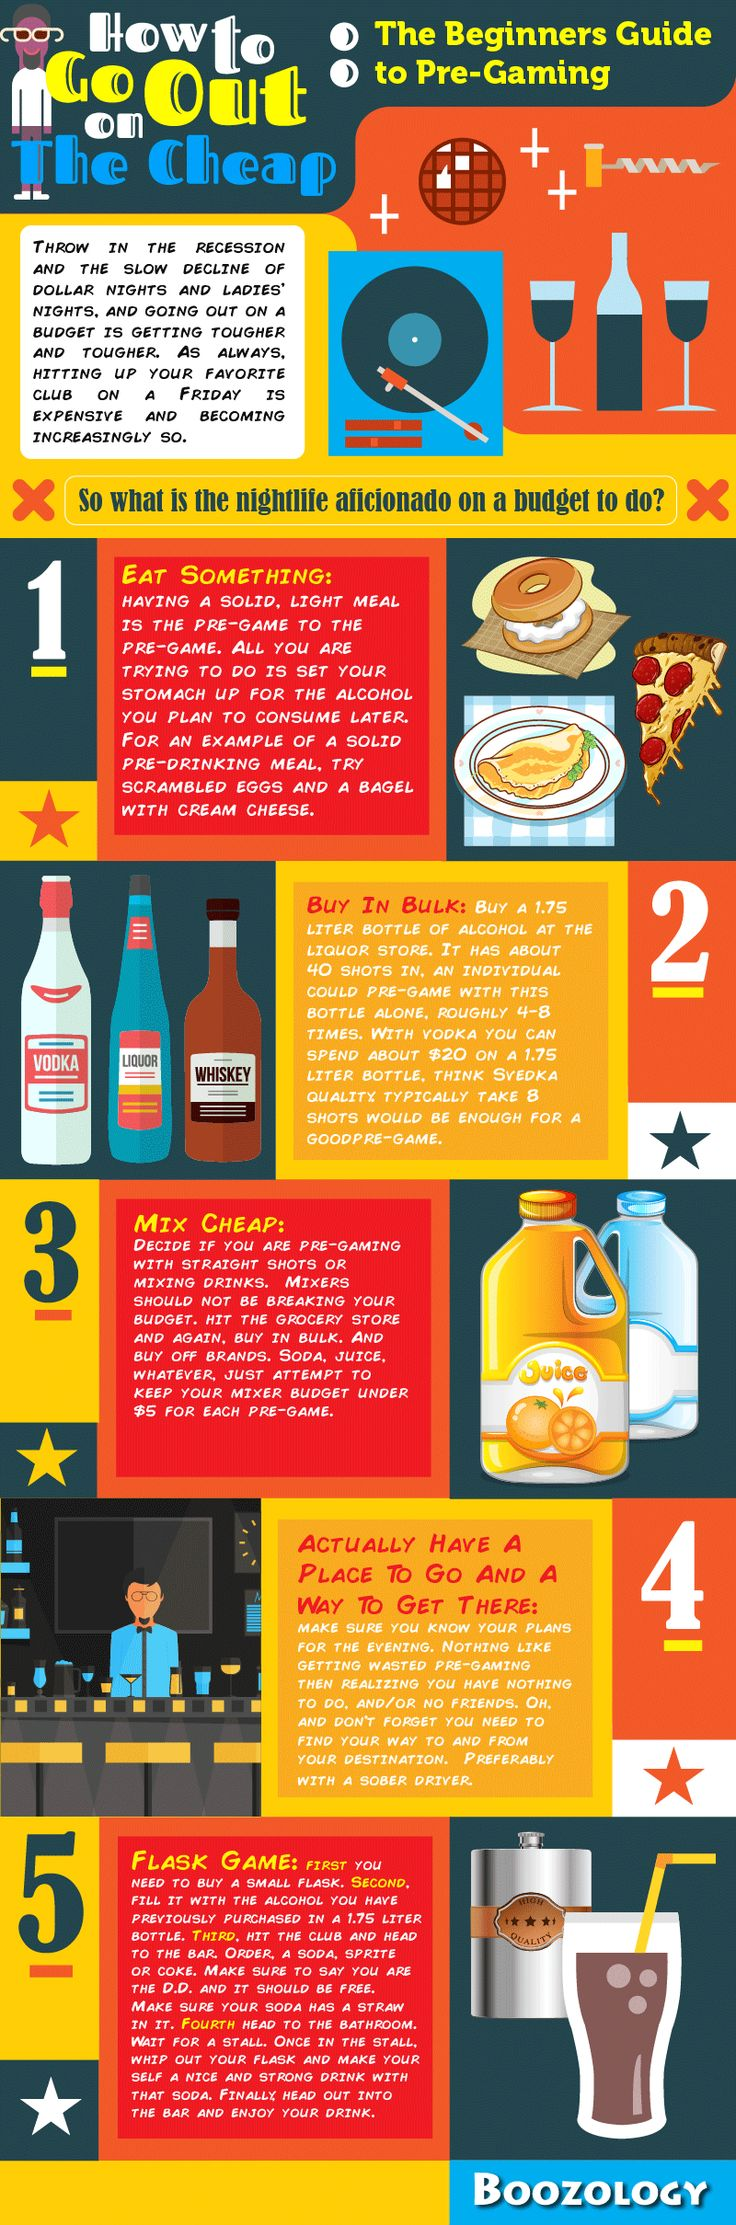 How To Go Out On The Cheap: The Beginners Guide to Pre-Gaming